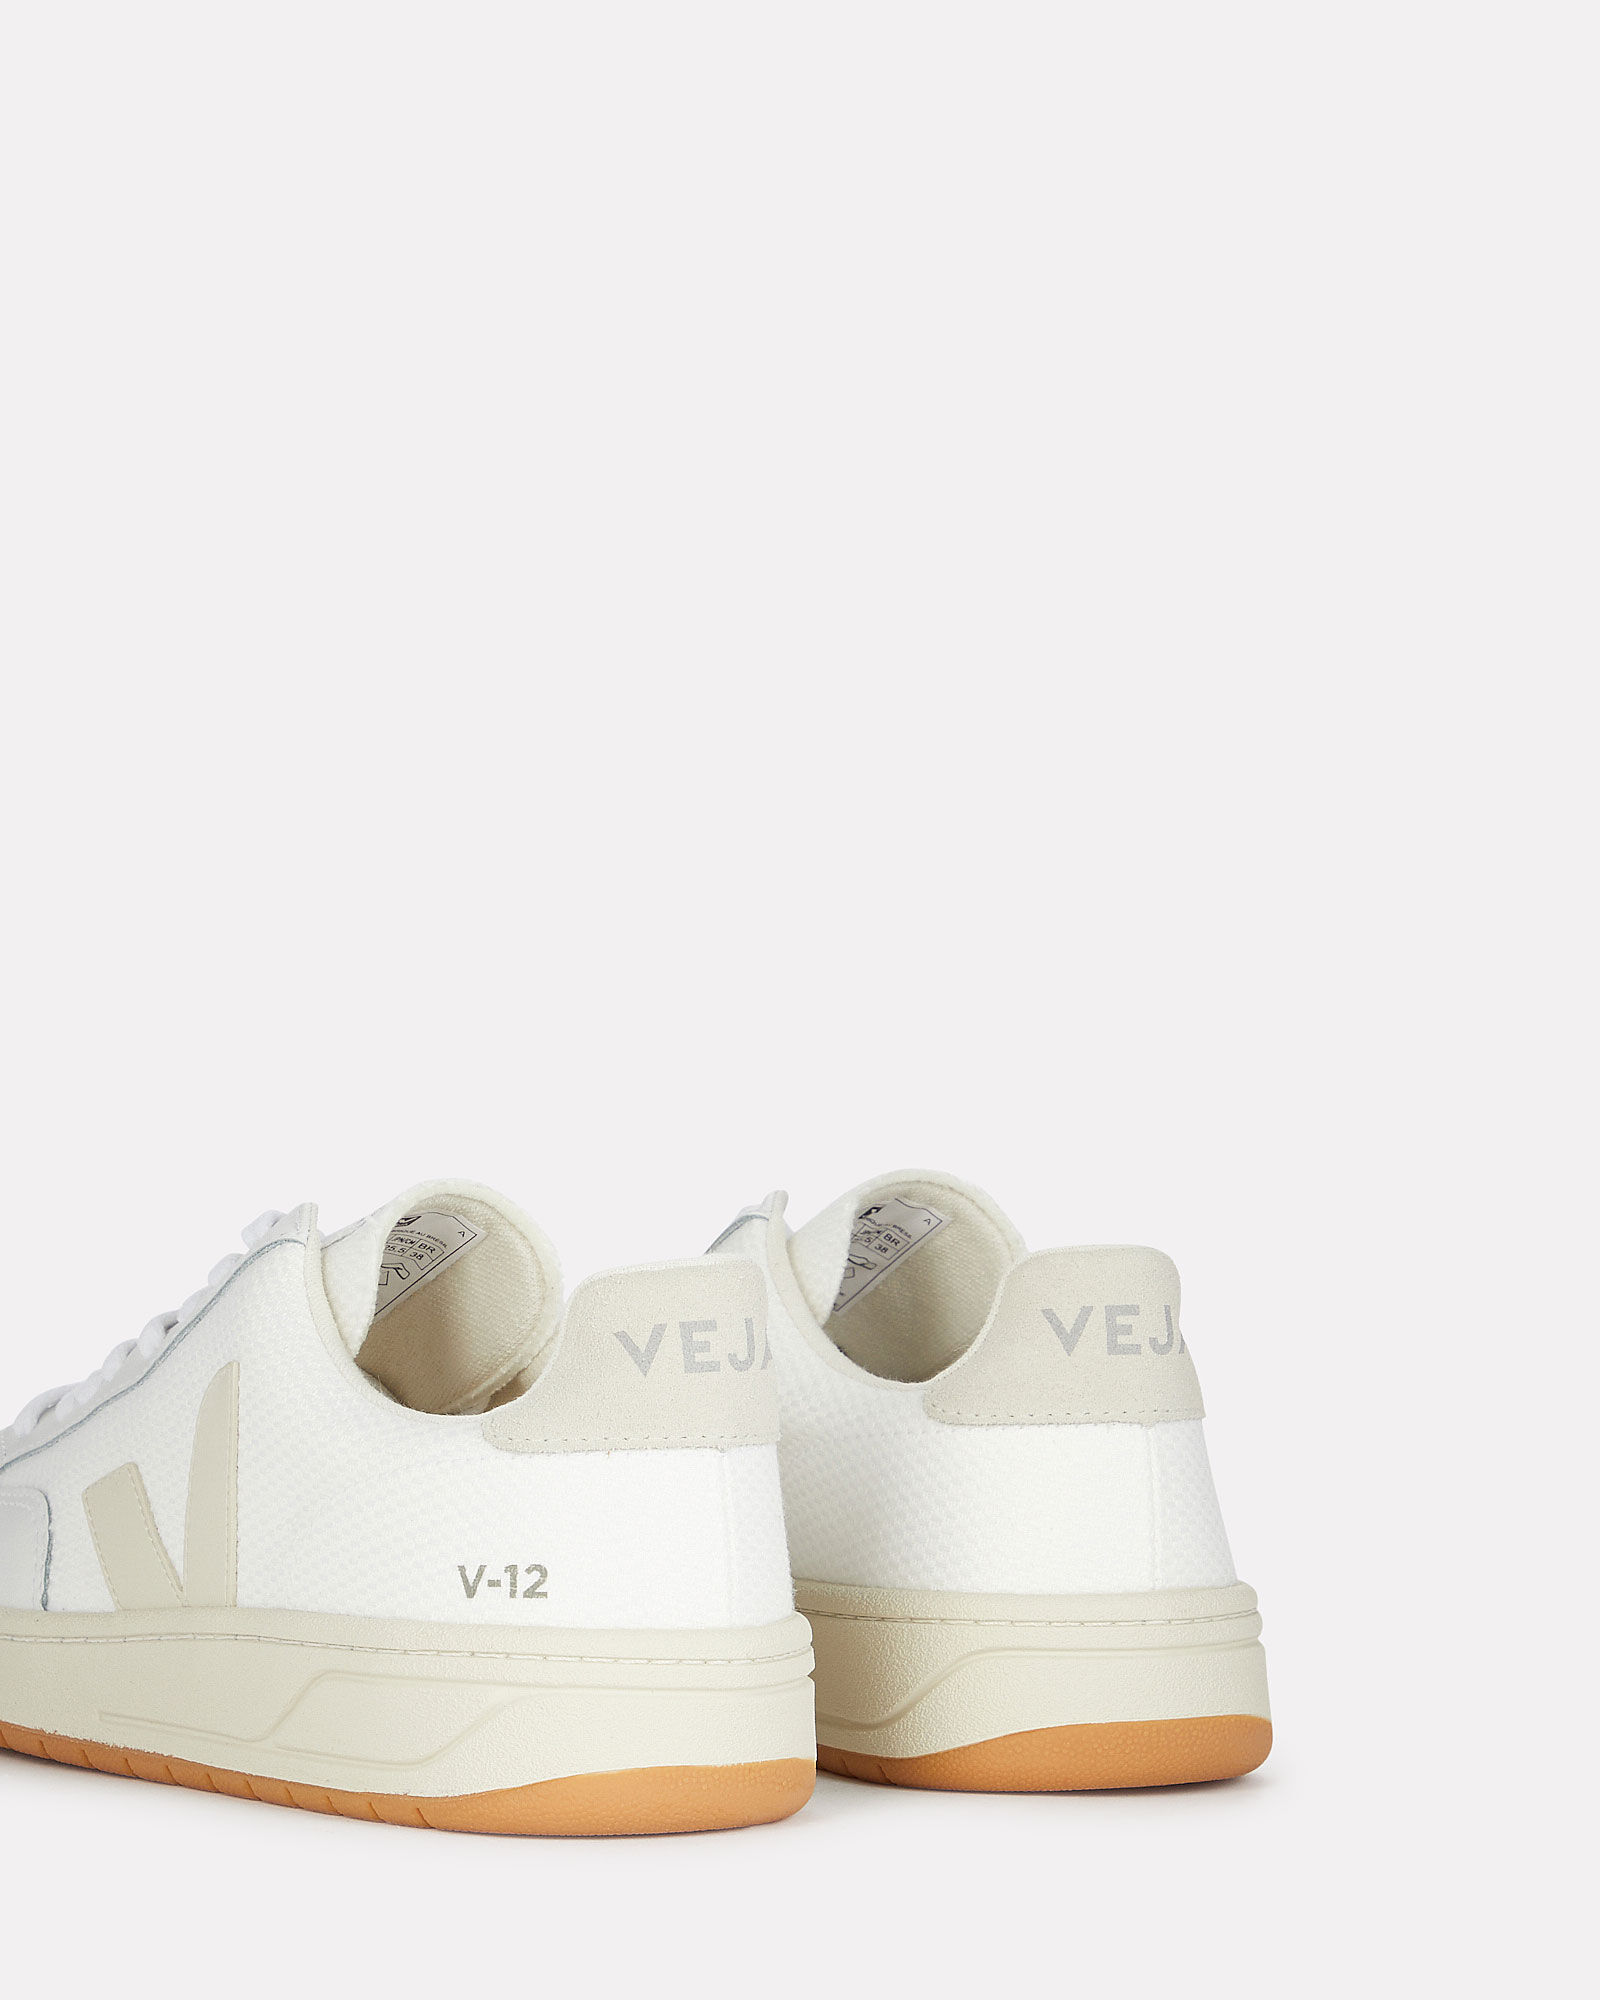 V-12 Leather Sneakers, WHITE/BEIGE, hi-res